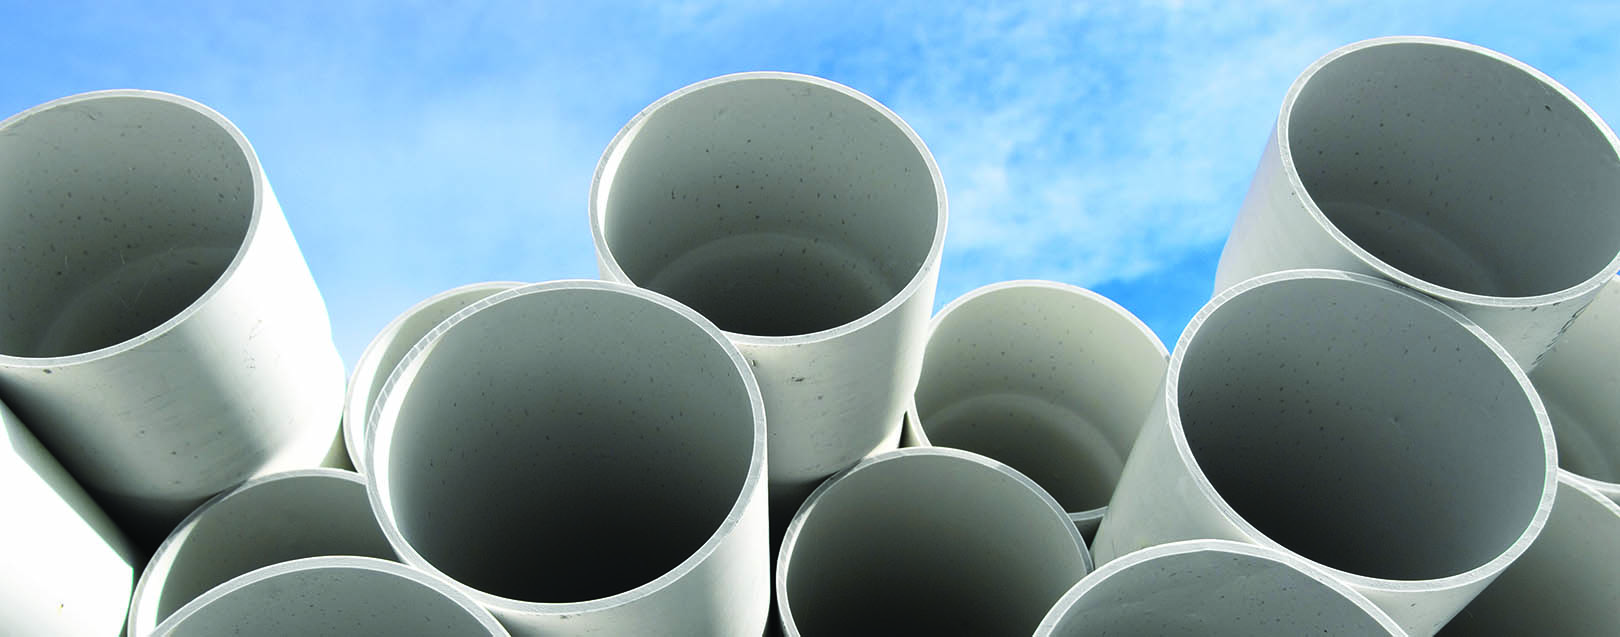 PVC Resins - More than just a plastic smile for Indian importers